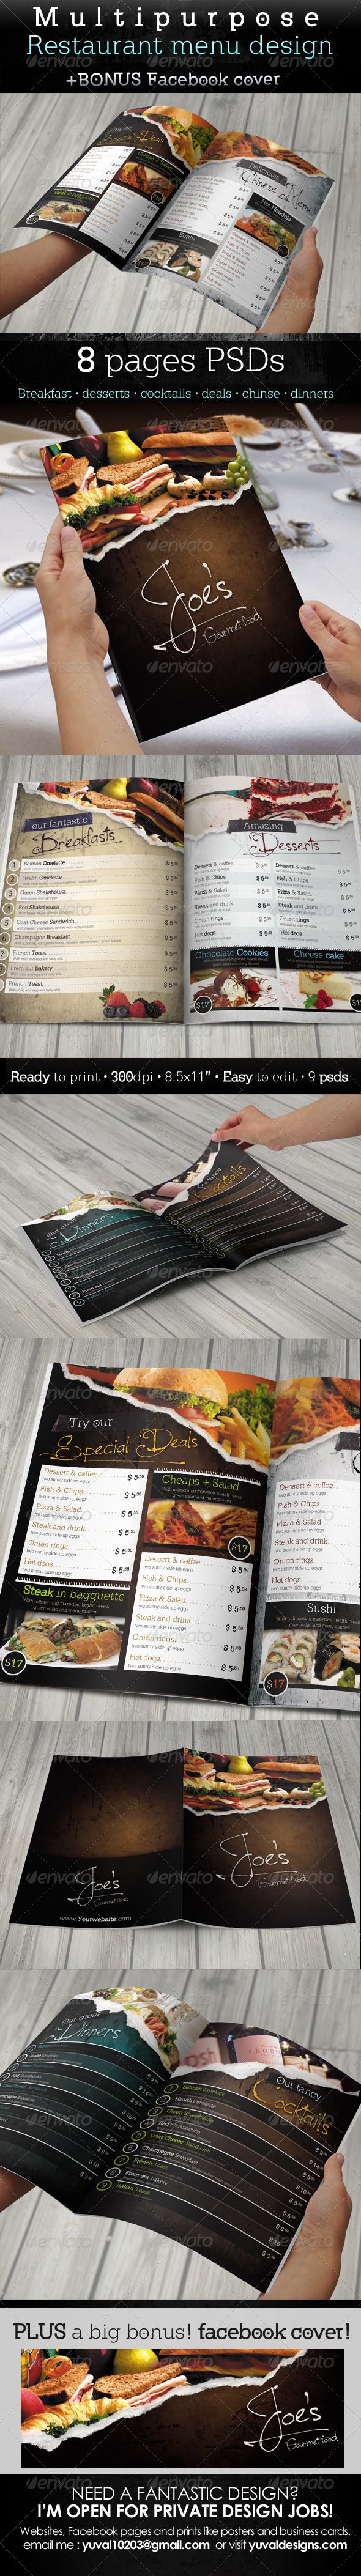 Multipurpose Restaurant Menu Template #GraphicRiver n use as a template in only one page y size • print ready with bleeds • VERY EASY to edit, the file includes help.